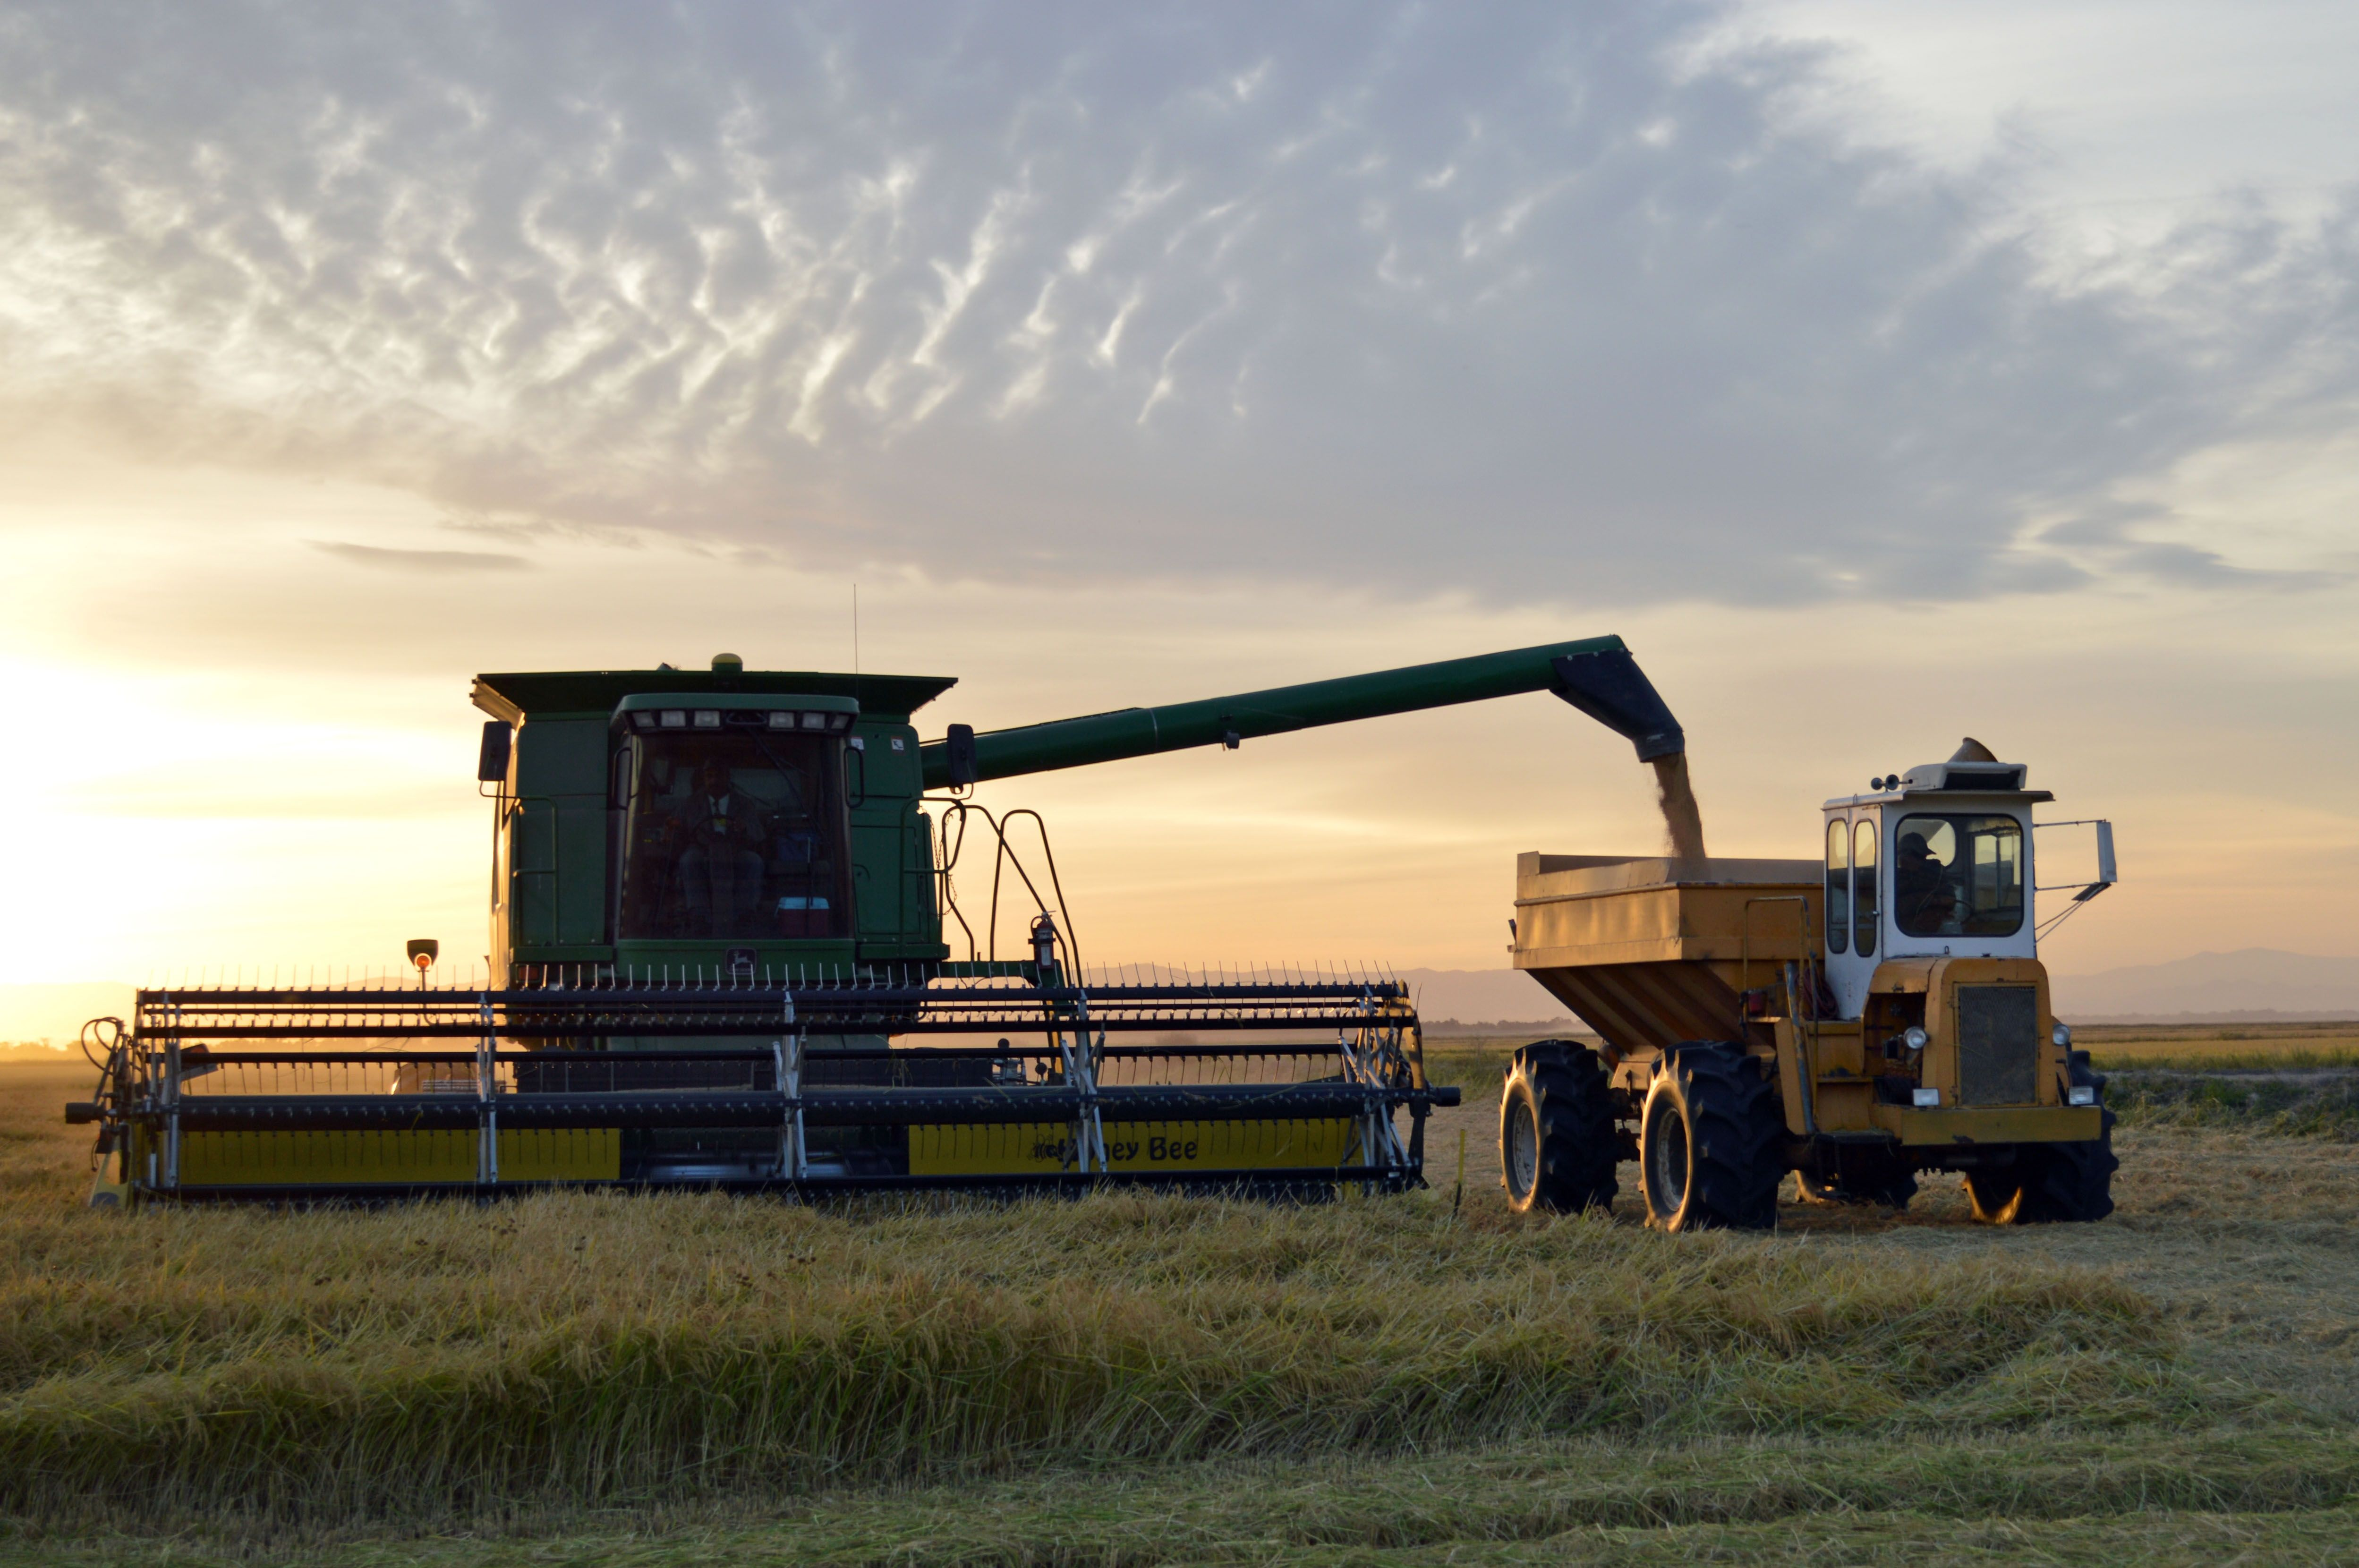 Sun starting to set on Norcal rice harvest